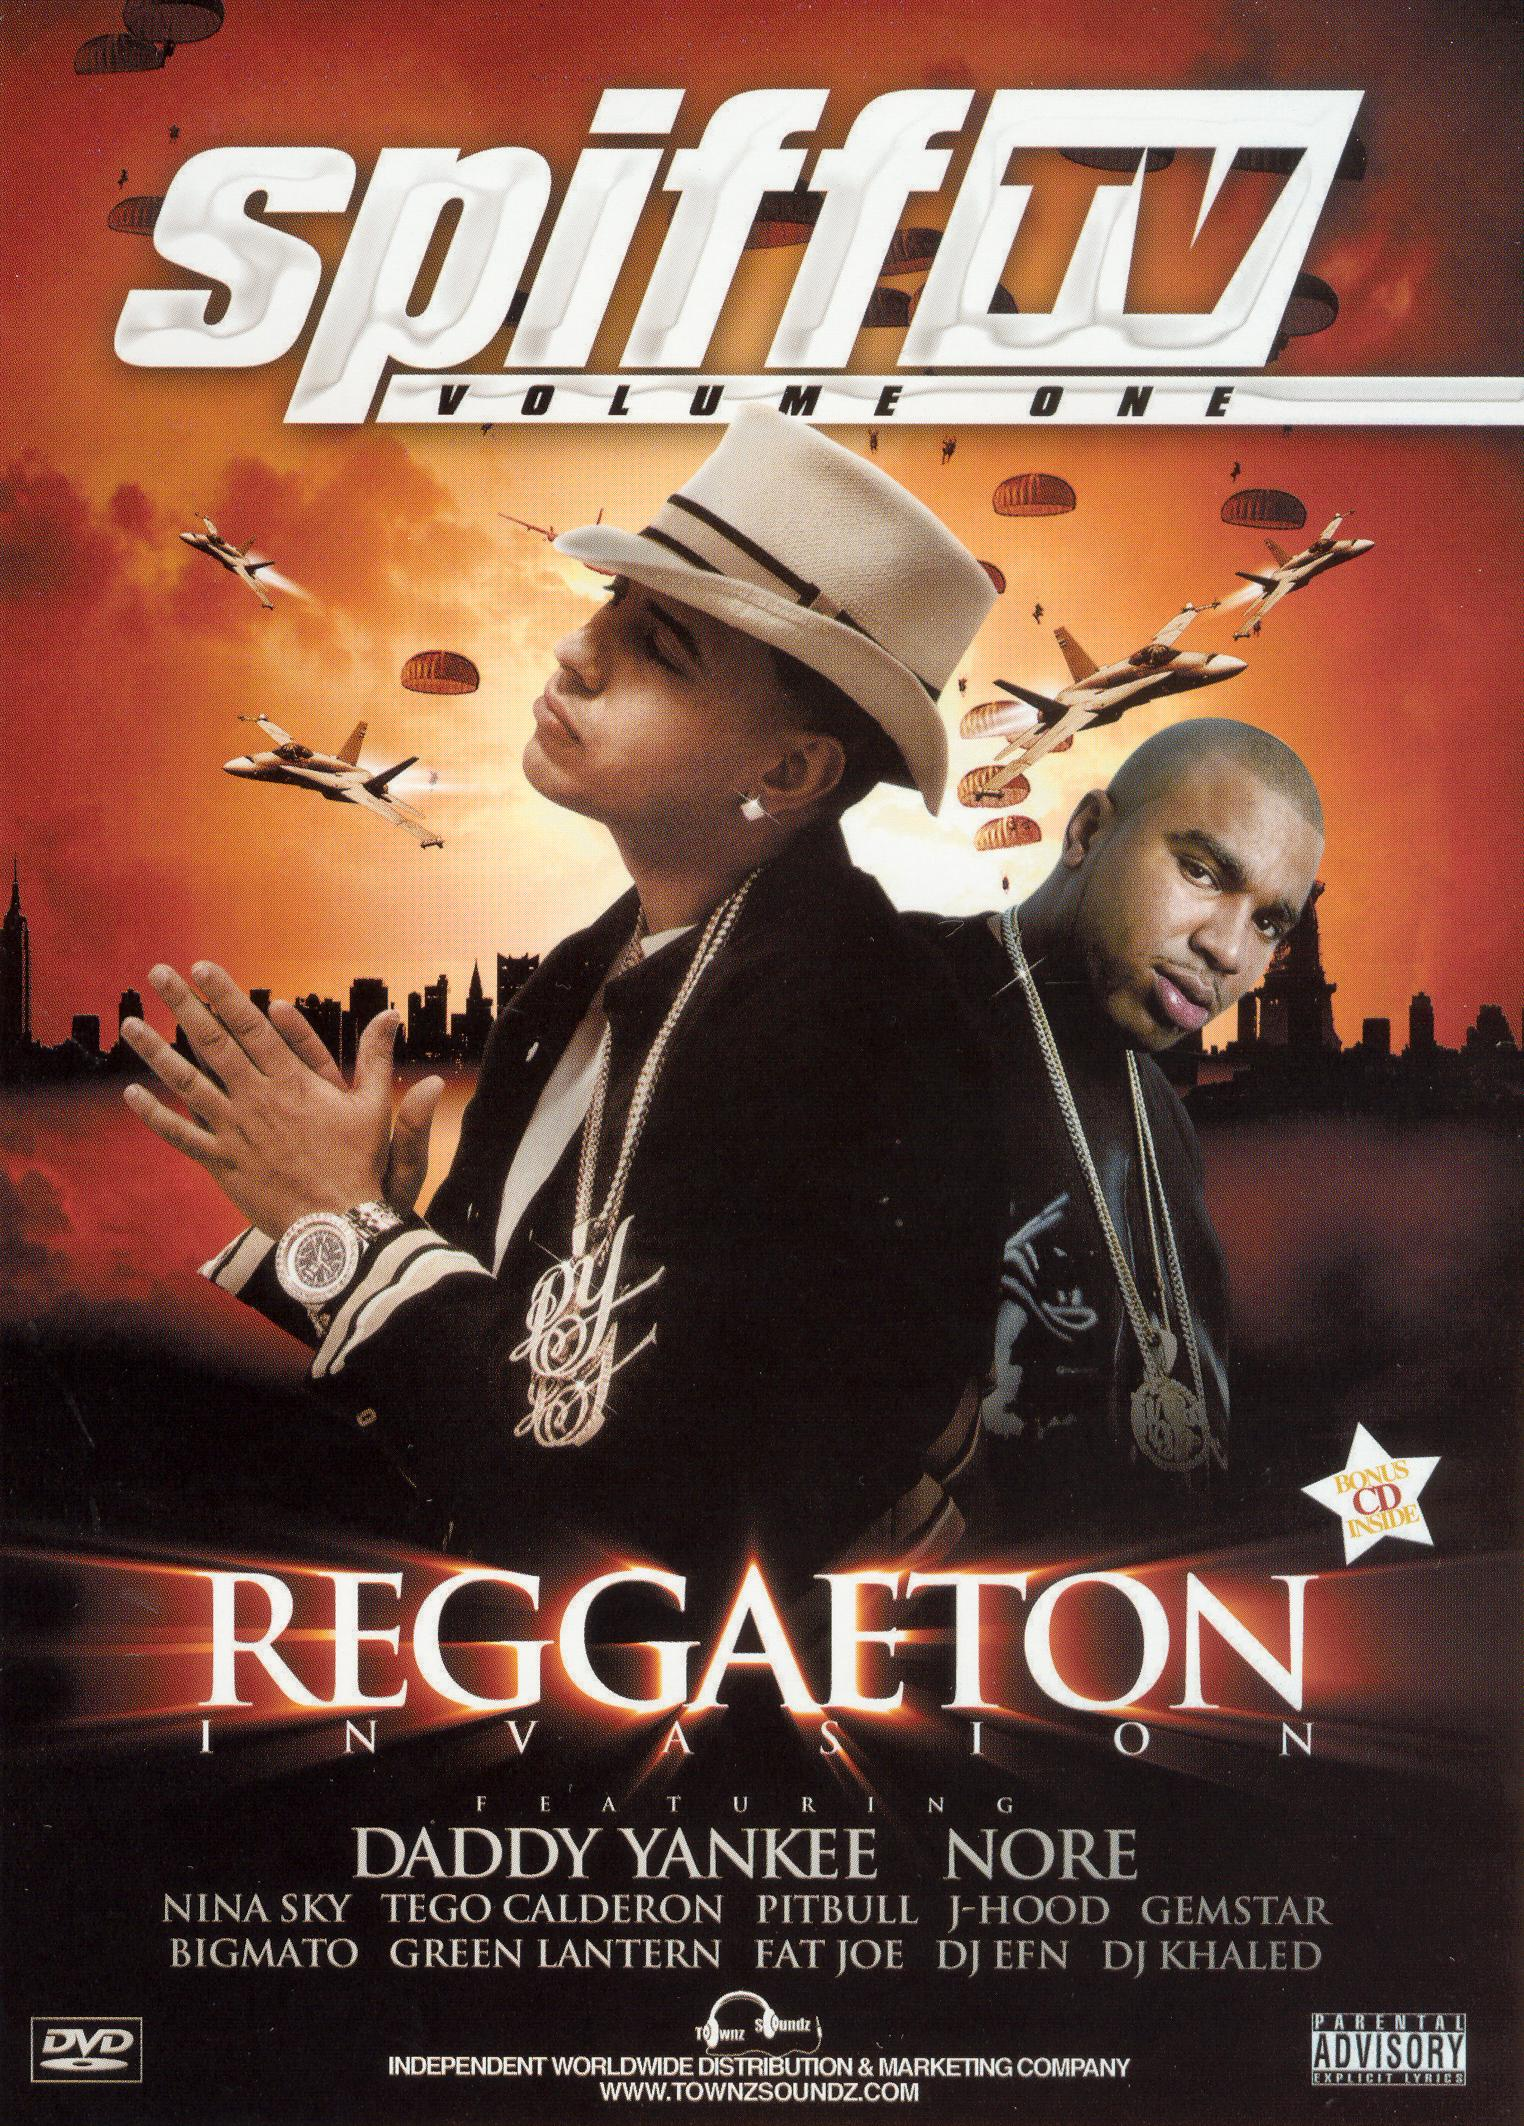 Spliff TV, Vol. 1: Reggaeton Invasion